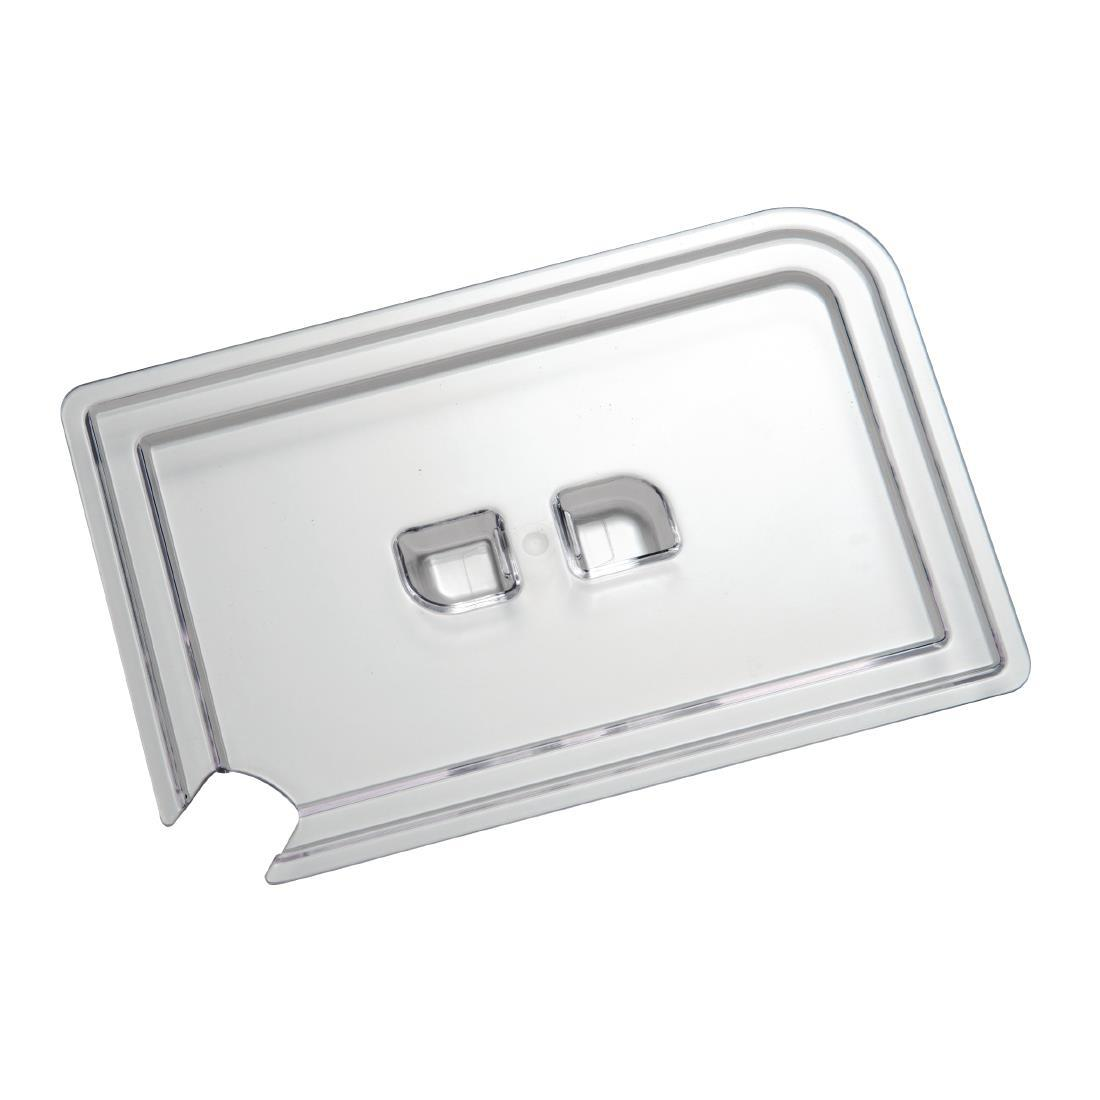 GH434 - APS Counter System Lid for 220x 145mm Bowls - Each - GH434